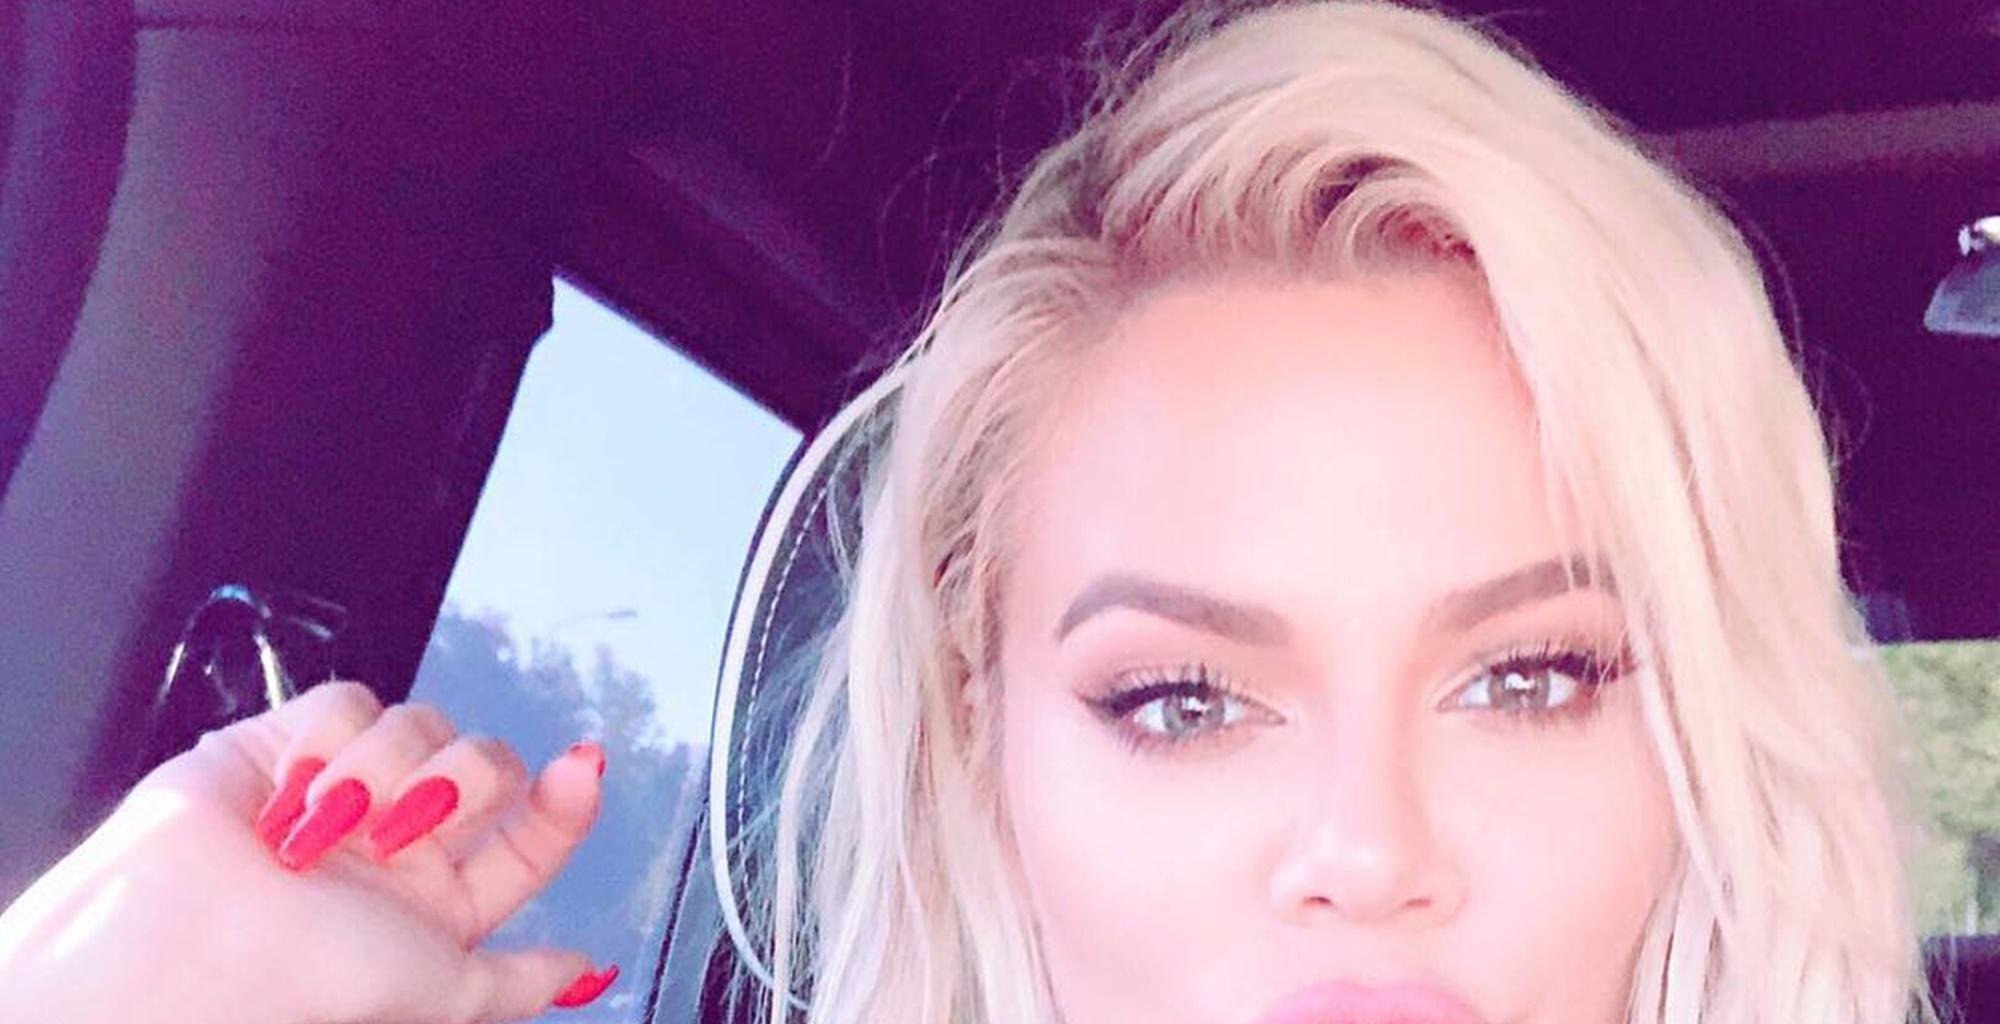 Khloe Kardashian Spotted In Leggings Out For A Lunch Break With Baby True -- She Looked Unrecognizable -- 'KUWTK' Fans Beg Tristan Thompson's Ex To Stop With The Plastic Surgery